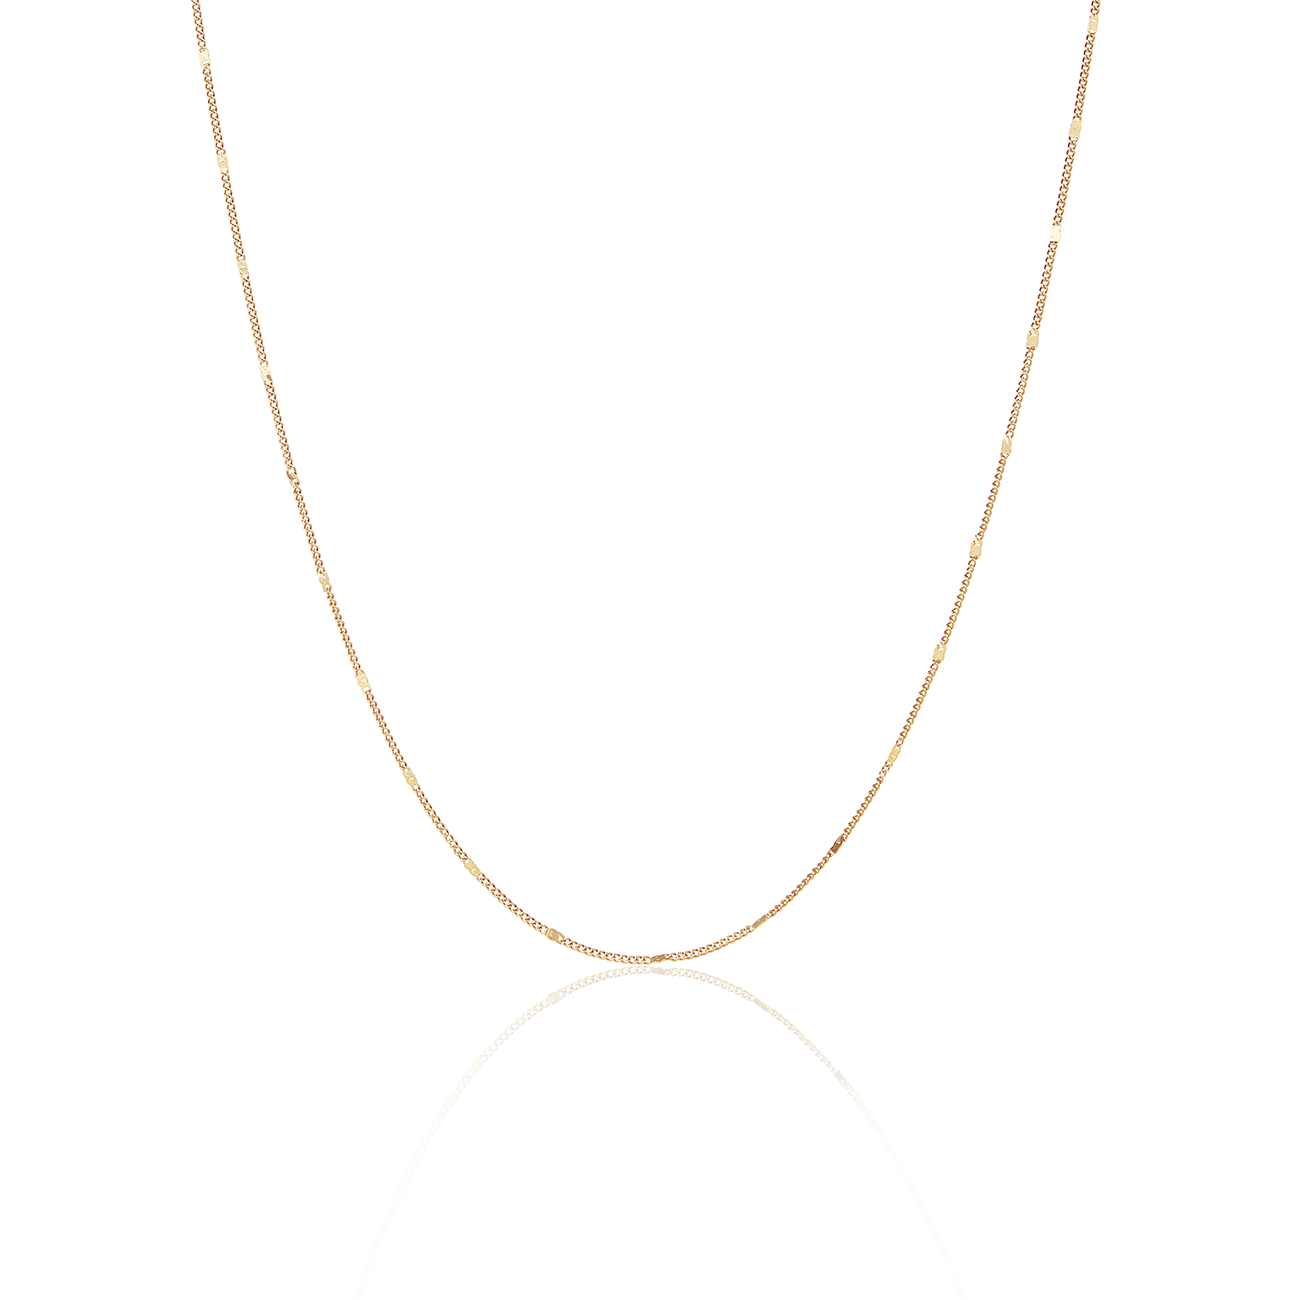 Malia Stamped Chain Necklace